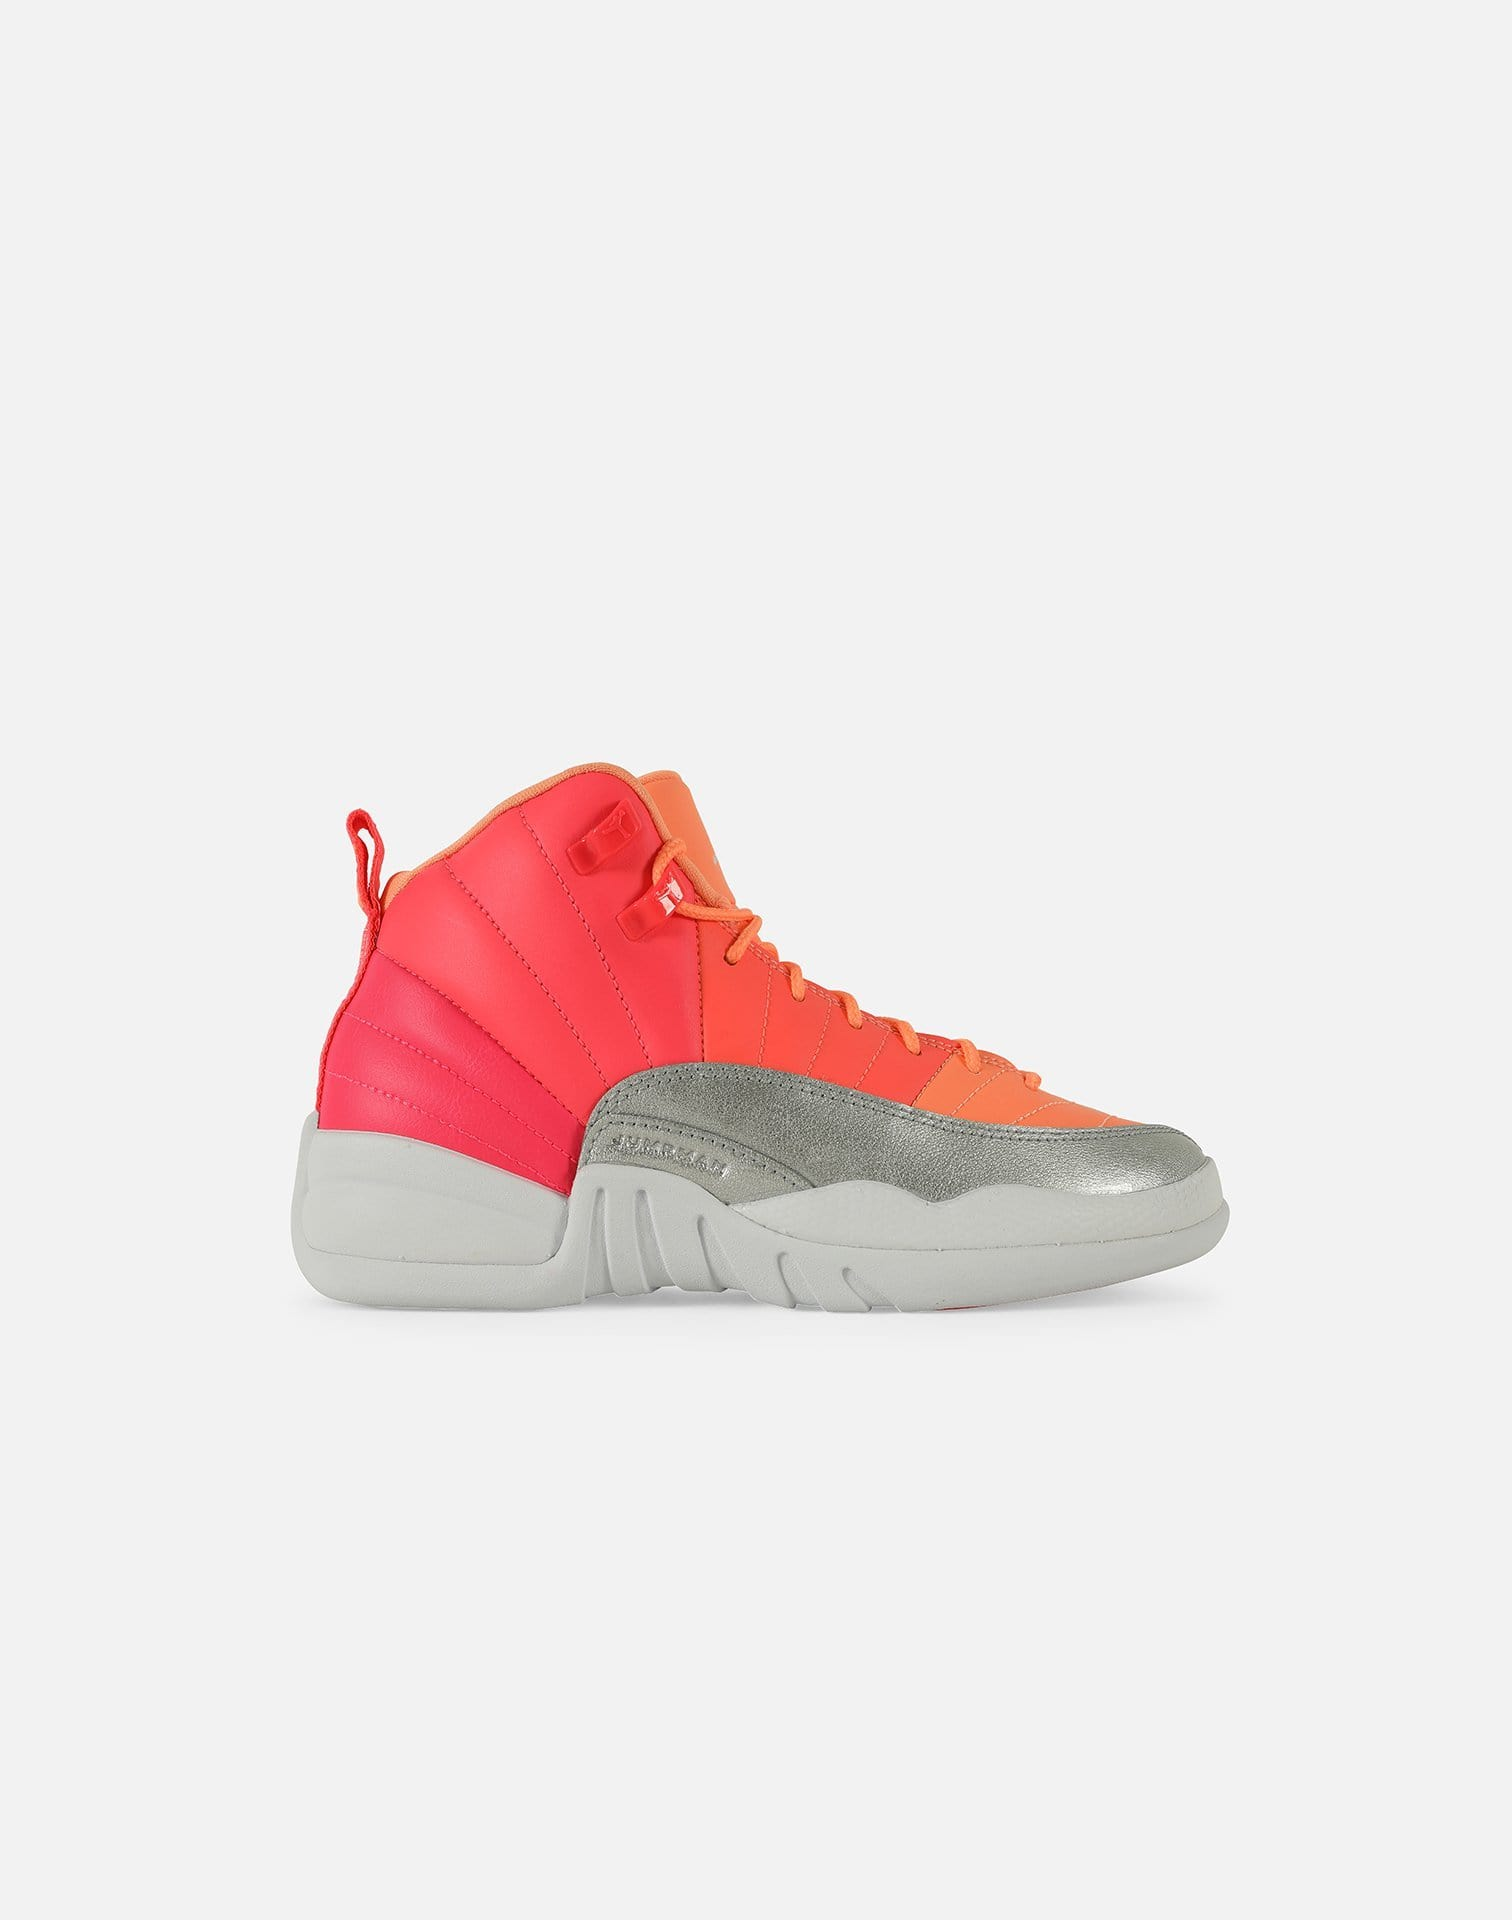 Jordan Air Jordan Retro 12 'Hot Punch' Grade-School